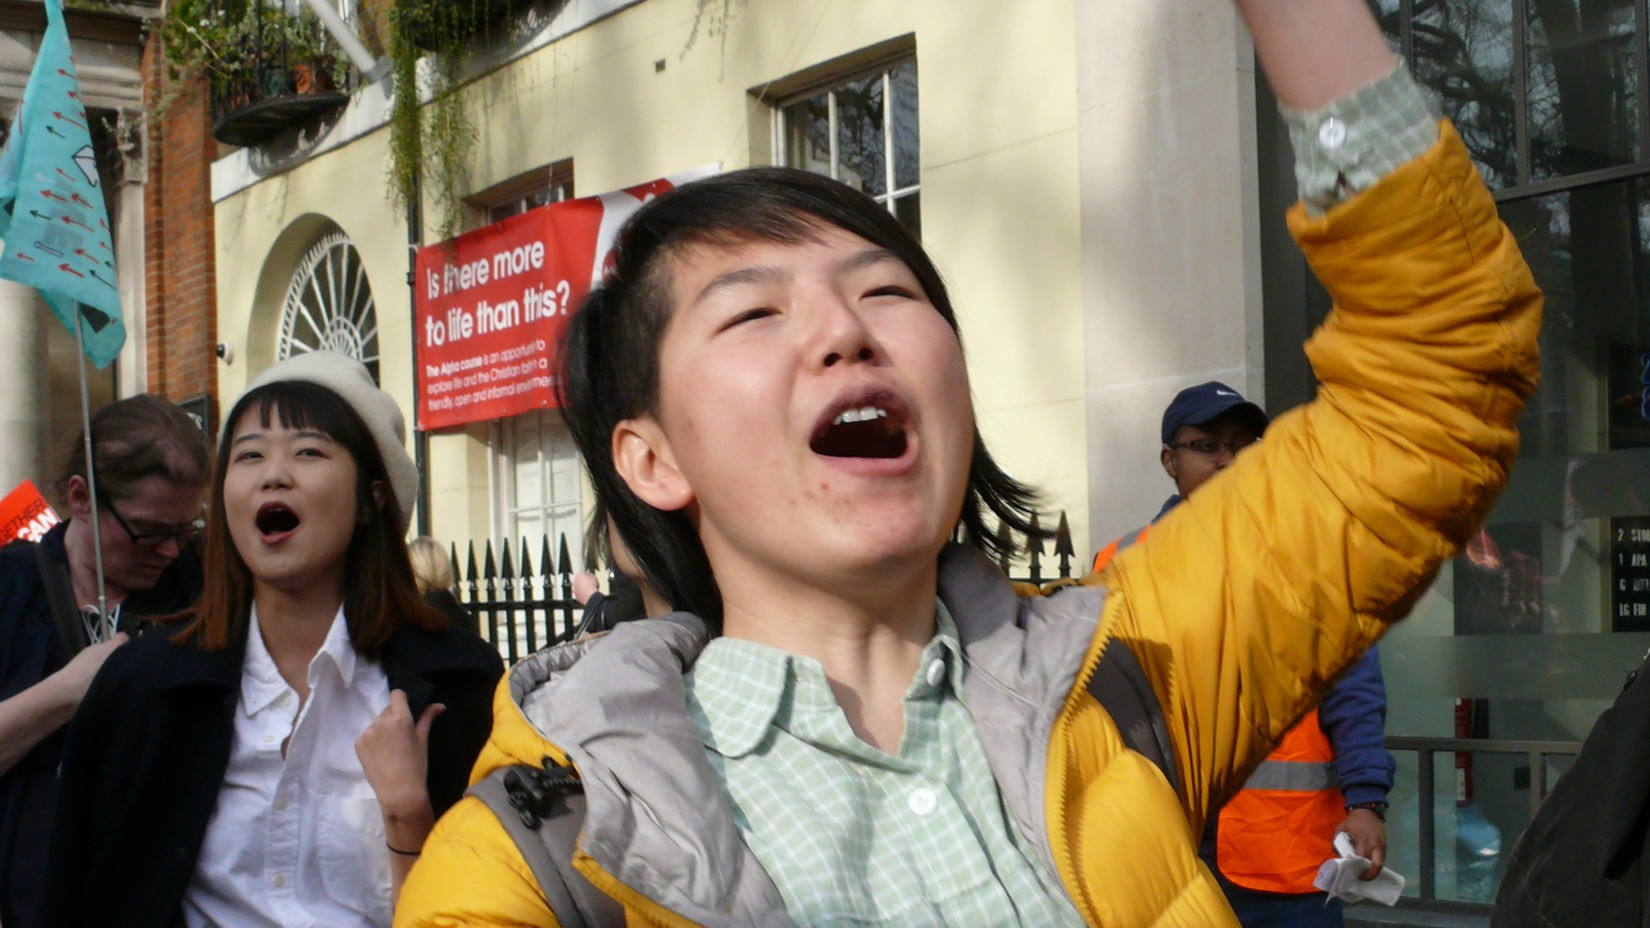 'International Slut' Activist Li Maizi Is One of China's Loudest Feminist Voices